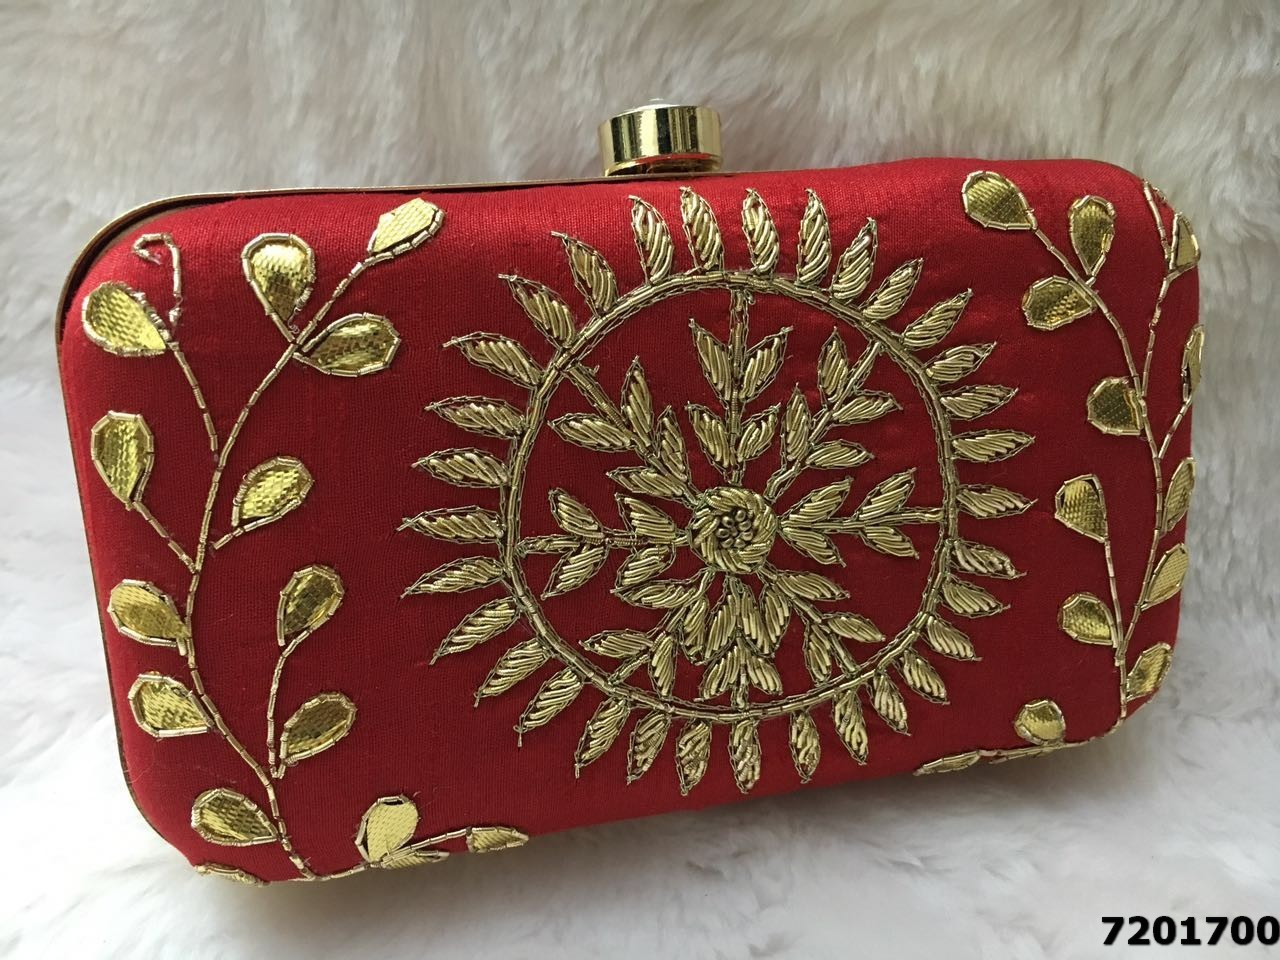 Adorable Ethnic Box Clutch